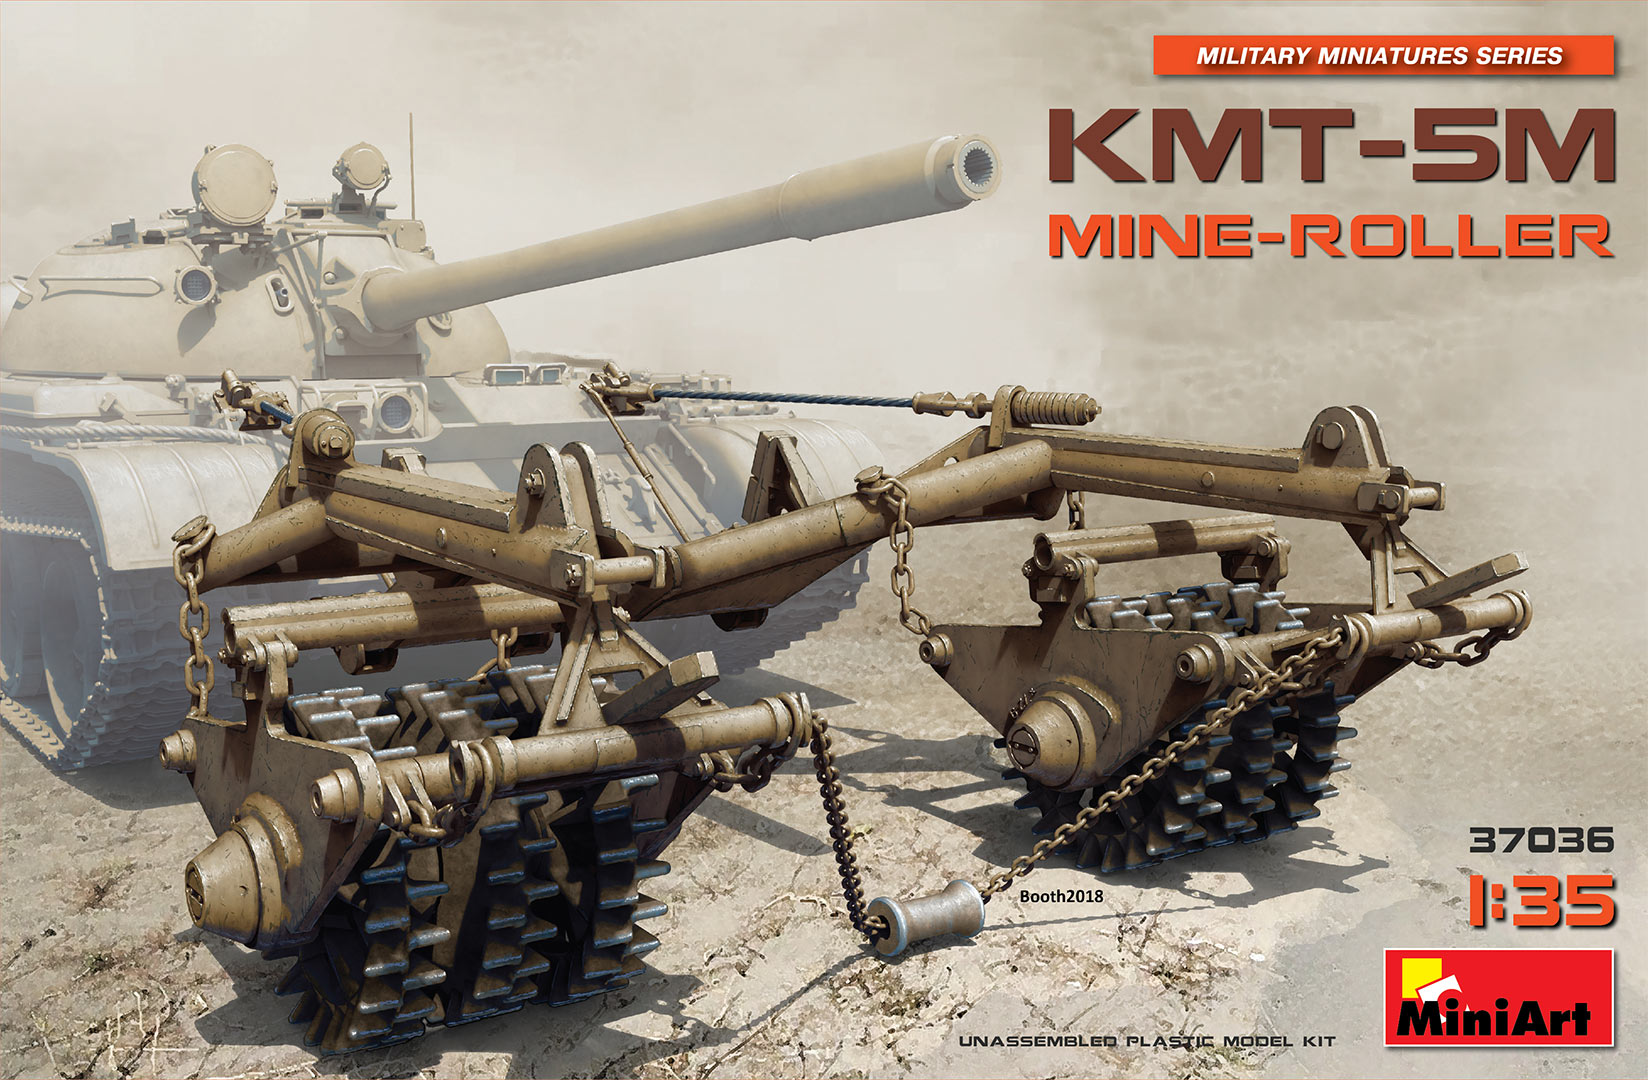 MiniArt KMT-5M Mine-Roller (1/35)